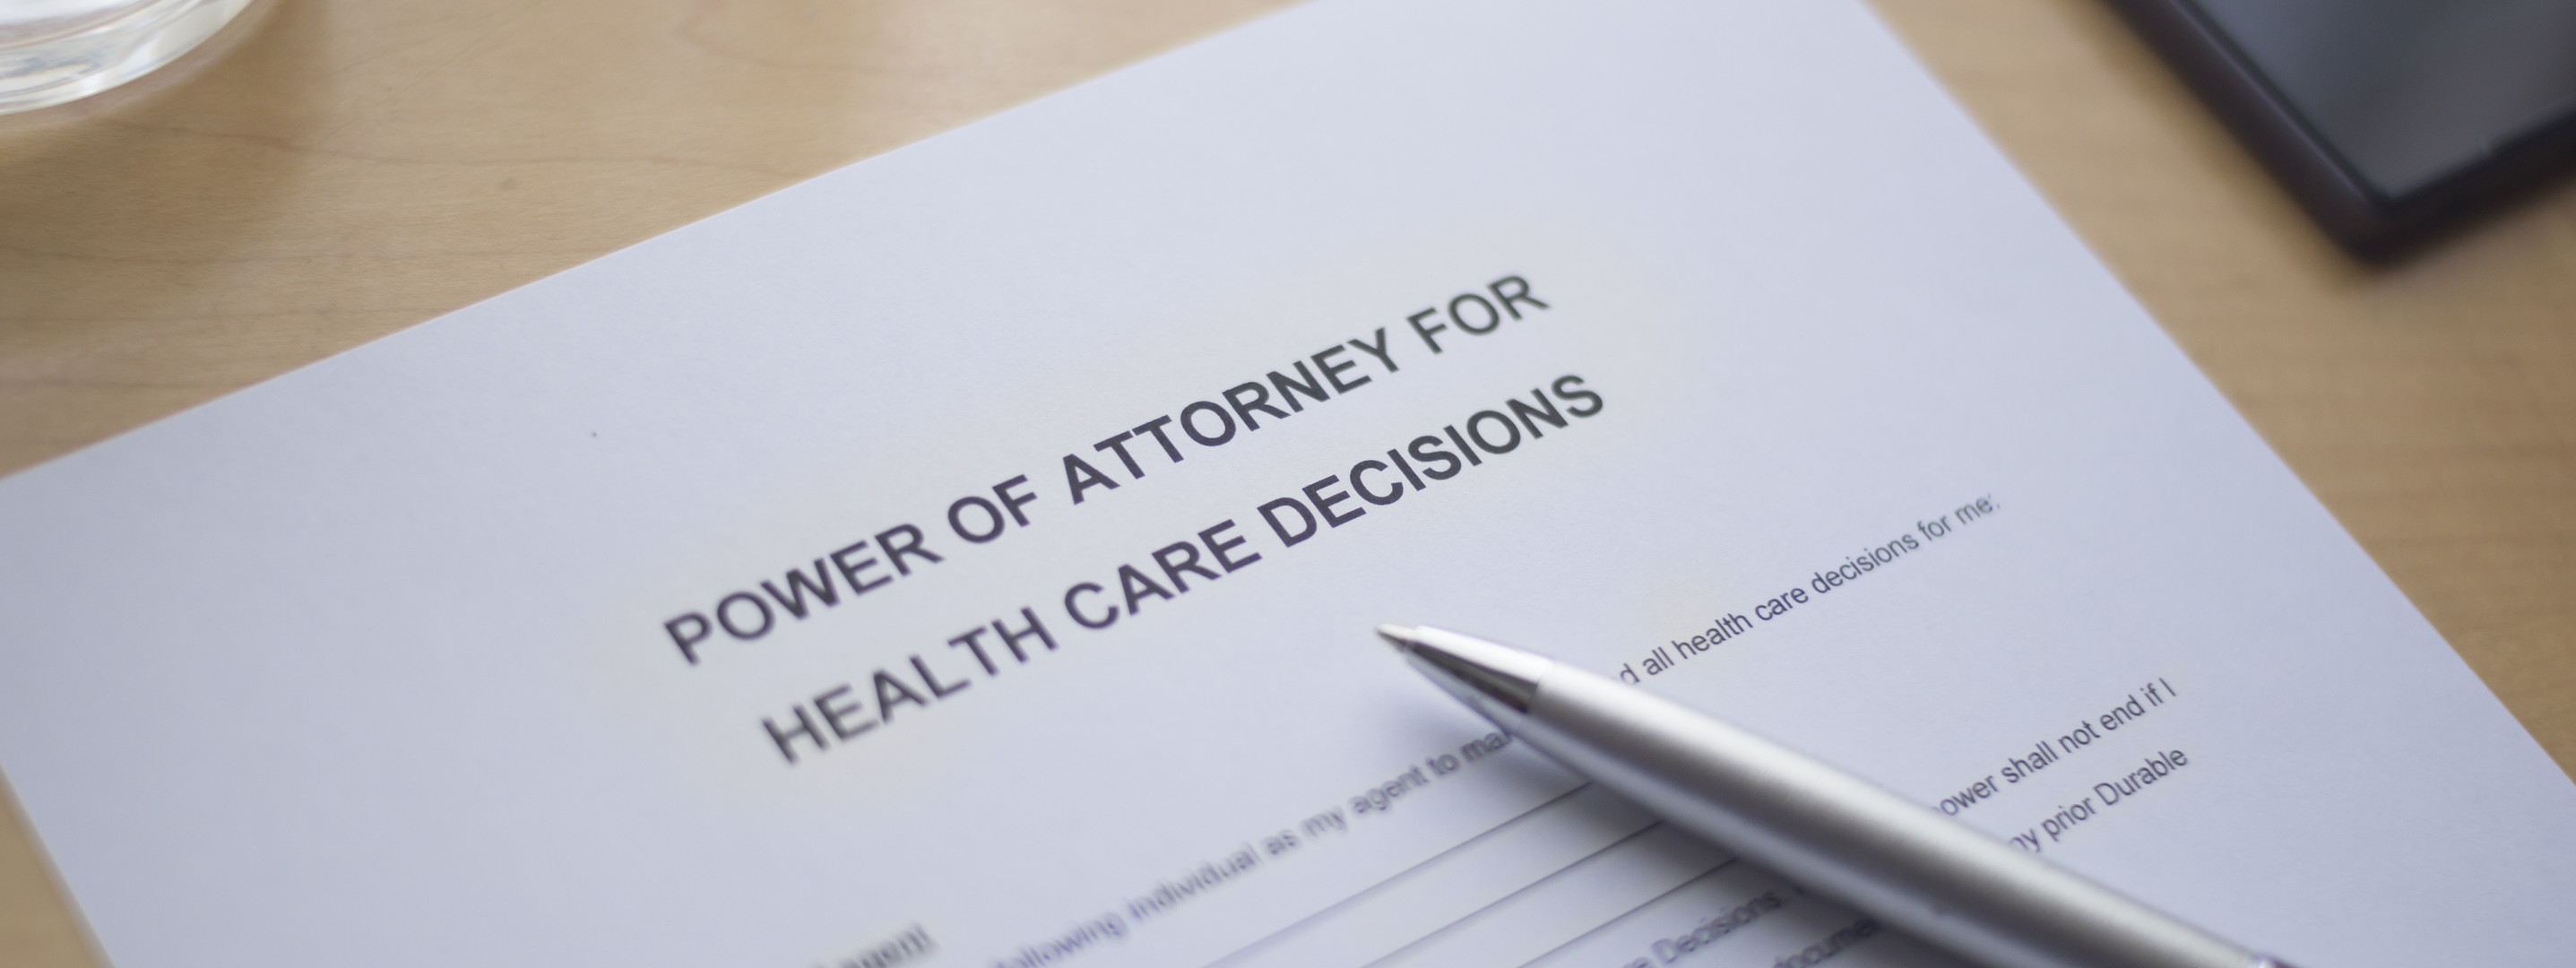 Health Care Power of Attorney.jpeg